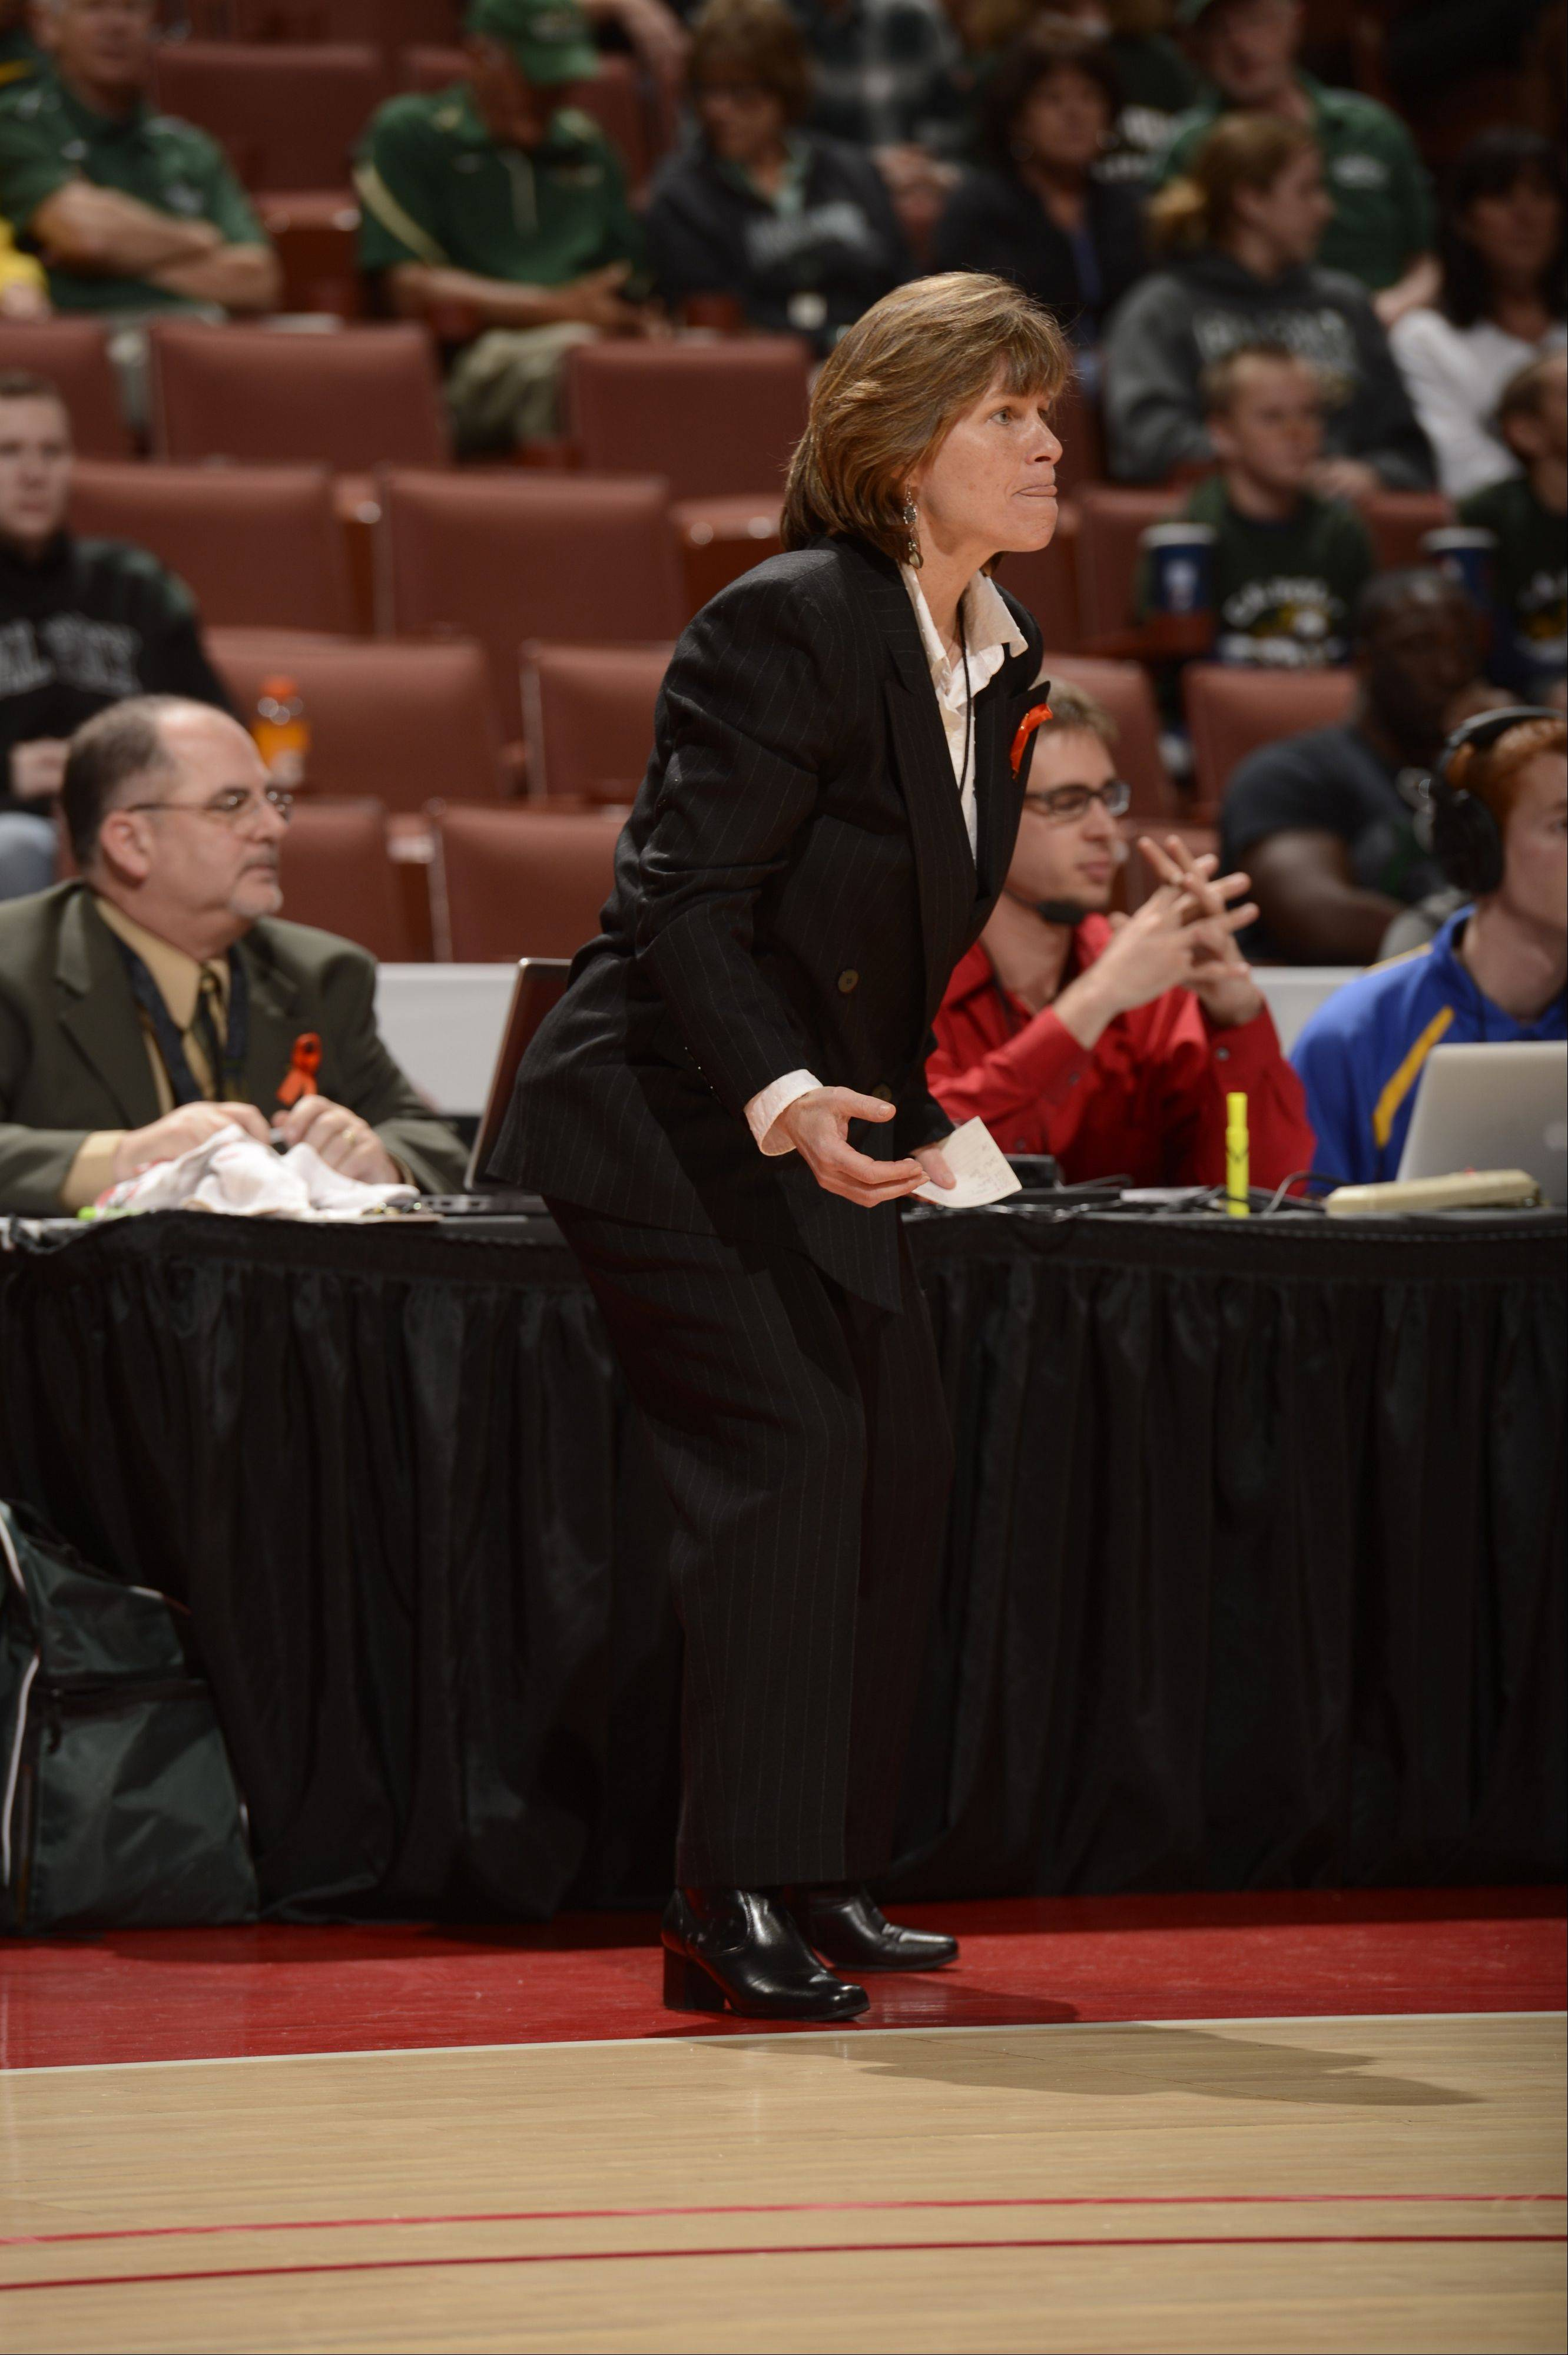 The most-successful coach in the 40-year history of Cal Poly women's basketball, Faith Mimnaugh, opens her 17th season at the helm of the Mustang program this weekend. The former Elk Grove High School standout led Cal Poly to the NCAA Tournament last season.